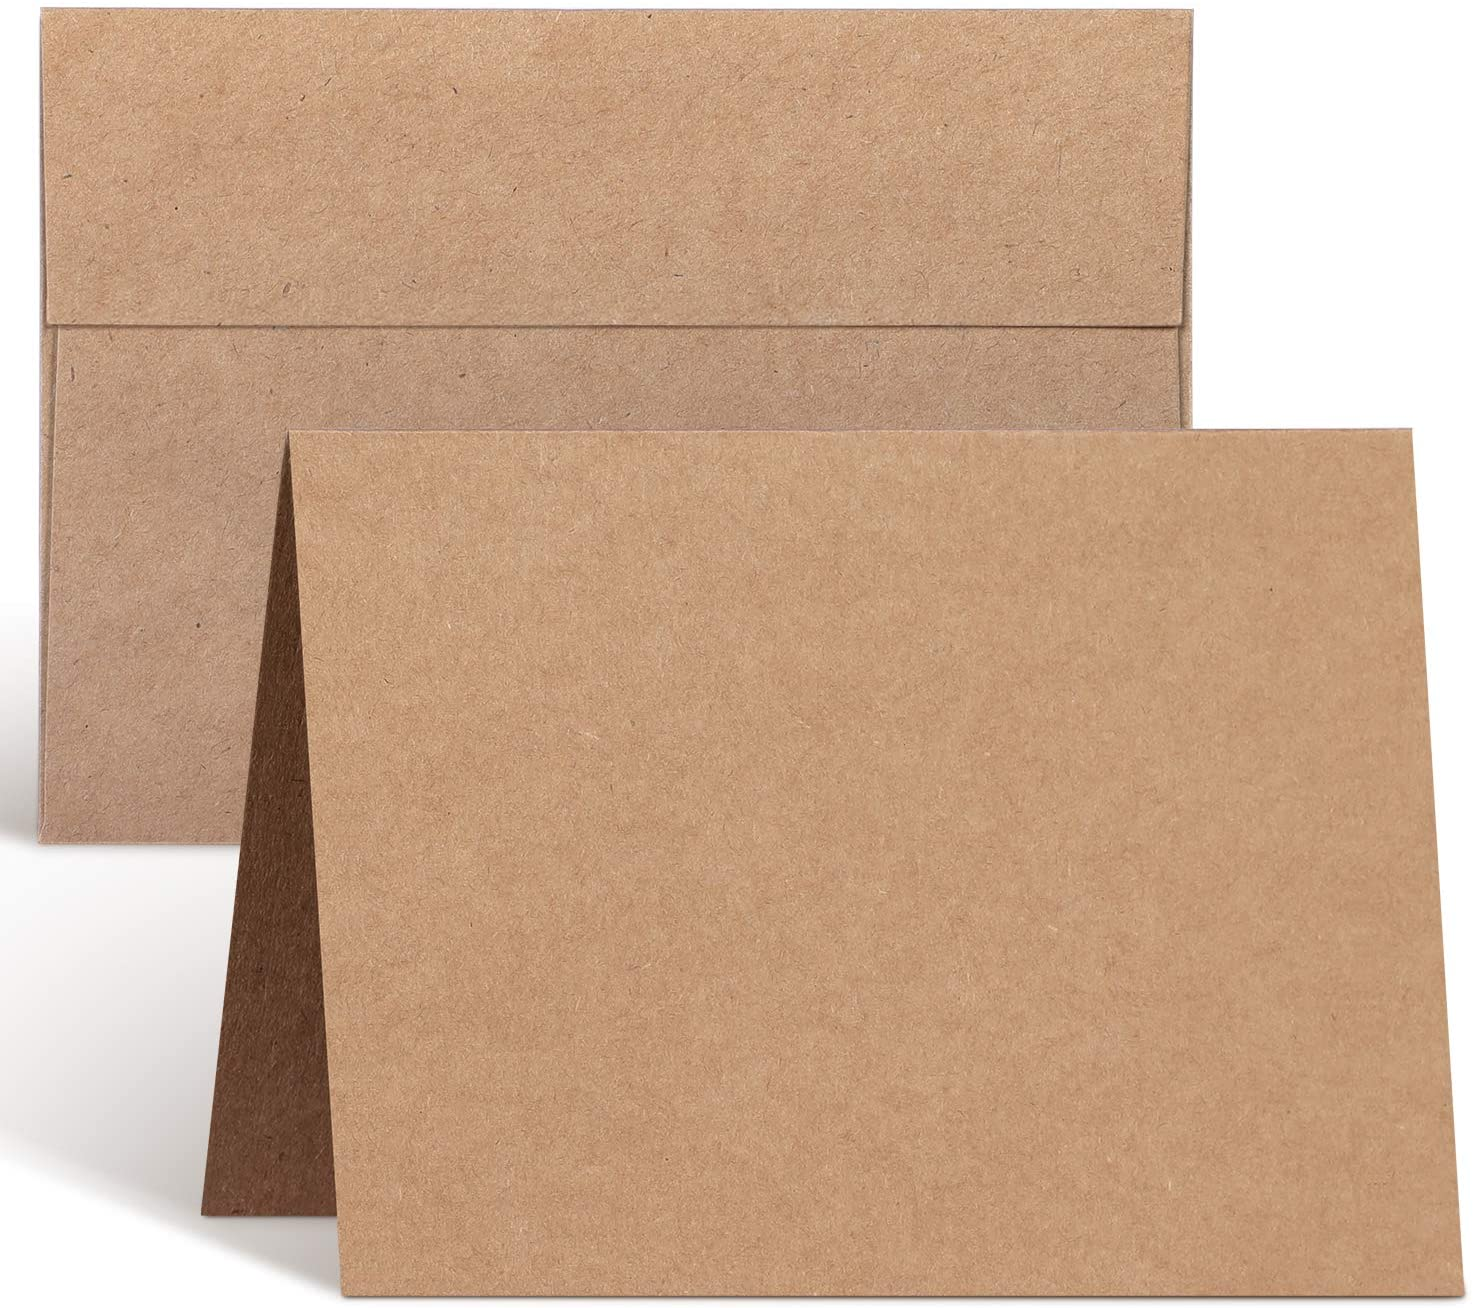 Blank Cards Factory outlet and Envelopes 100 Pack Chicago Mall Ohuhu Heavyweight 4.25 x 5.5